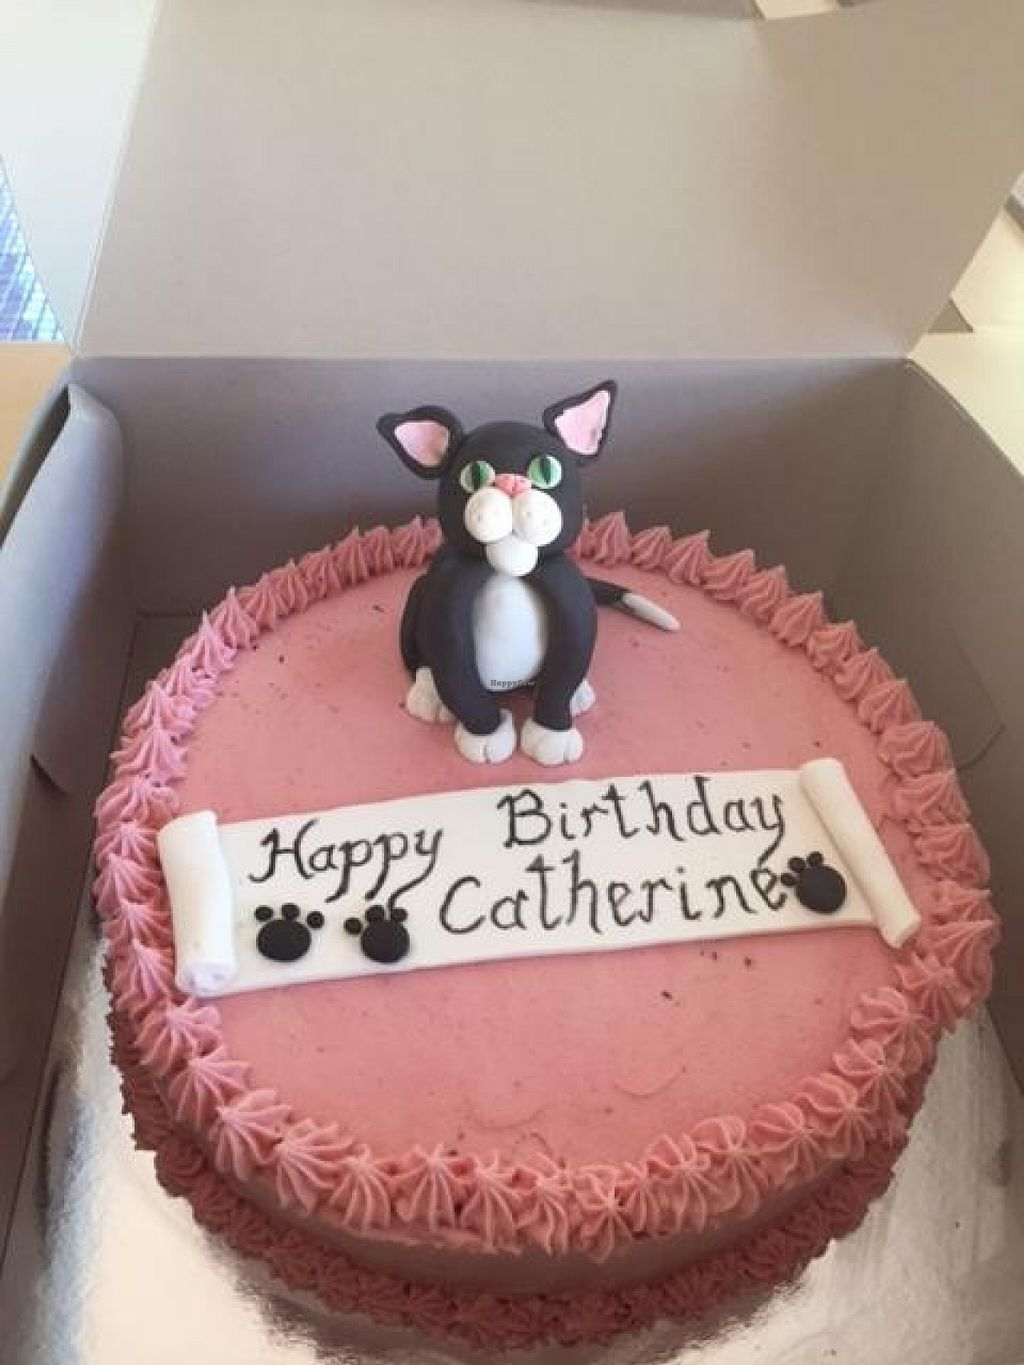 """Photo of OMV Bakery  by <a href=""""/members/profile/Kittybiscuit"""">Kittybiscuit</a> <br/>My birthday cake with cat design <br/> January 18, 2016  - <a href='/contact/abuse/image/66532/132850'>Report</a>"""